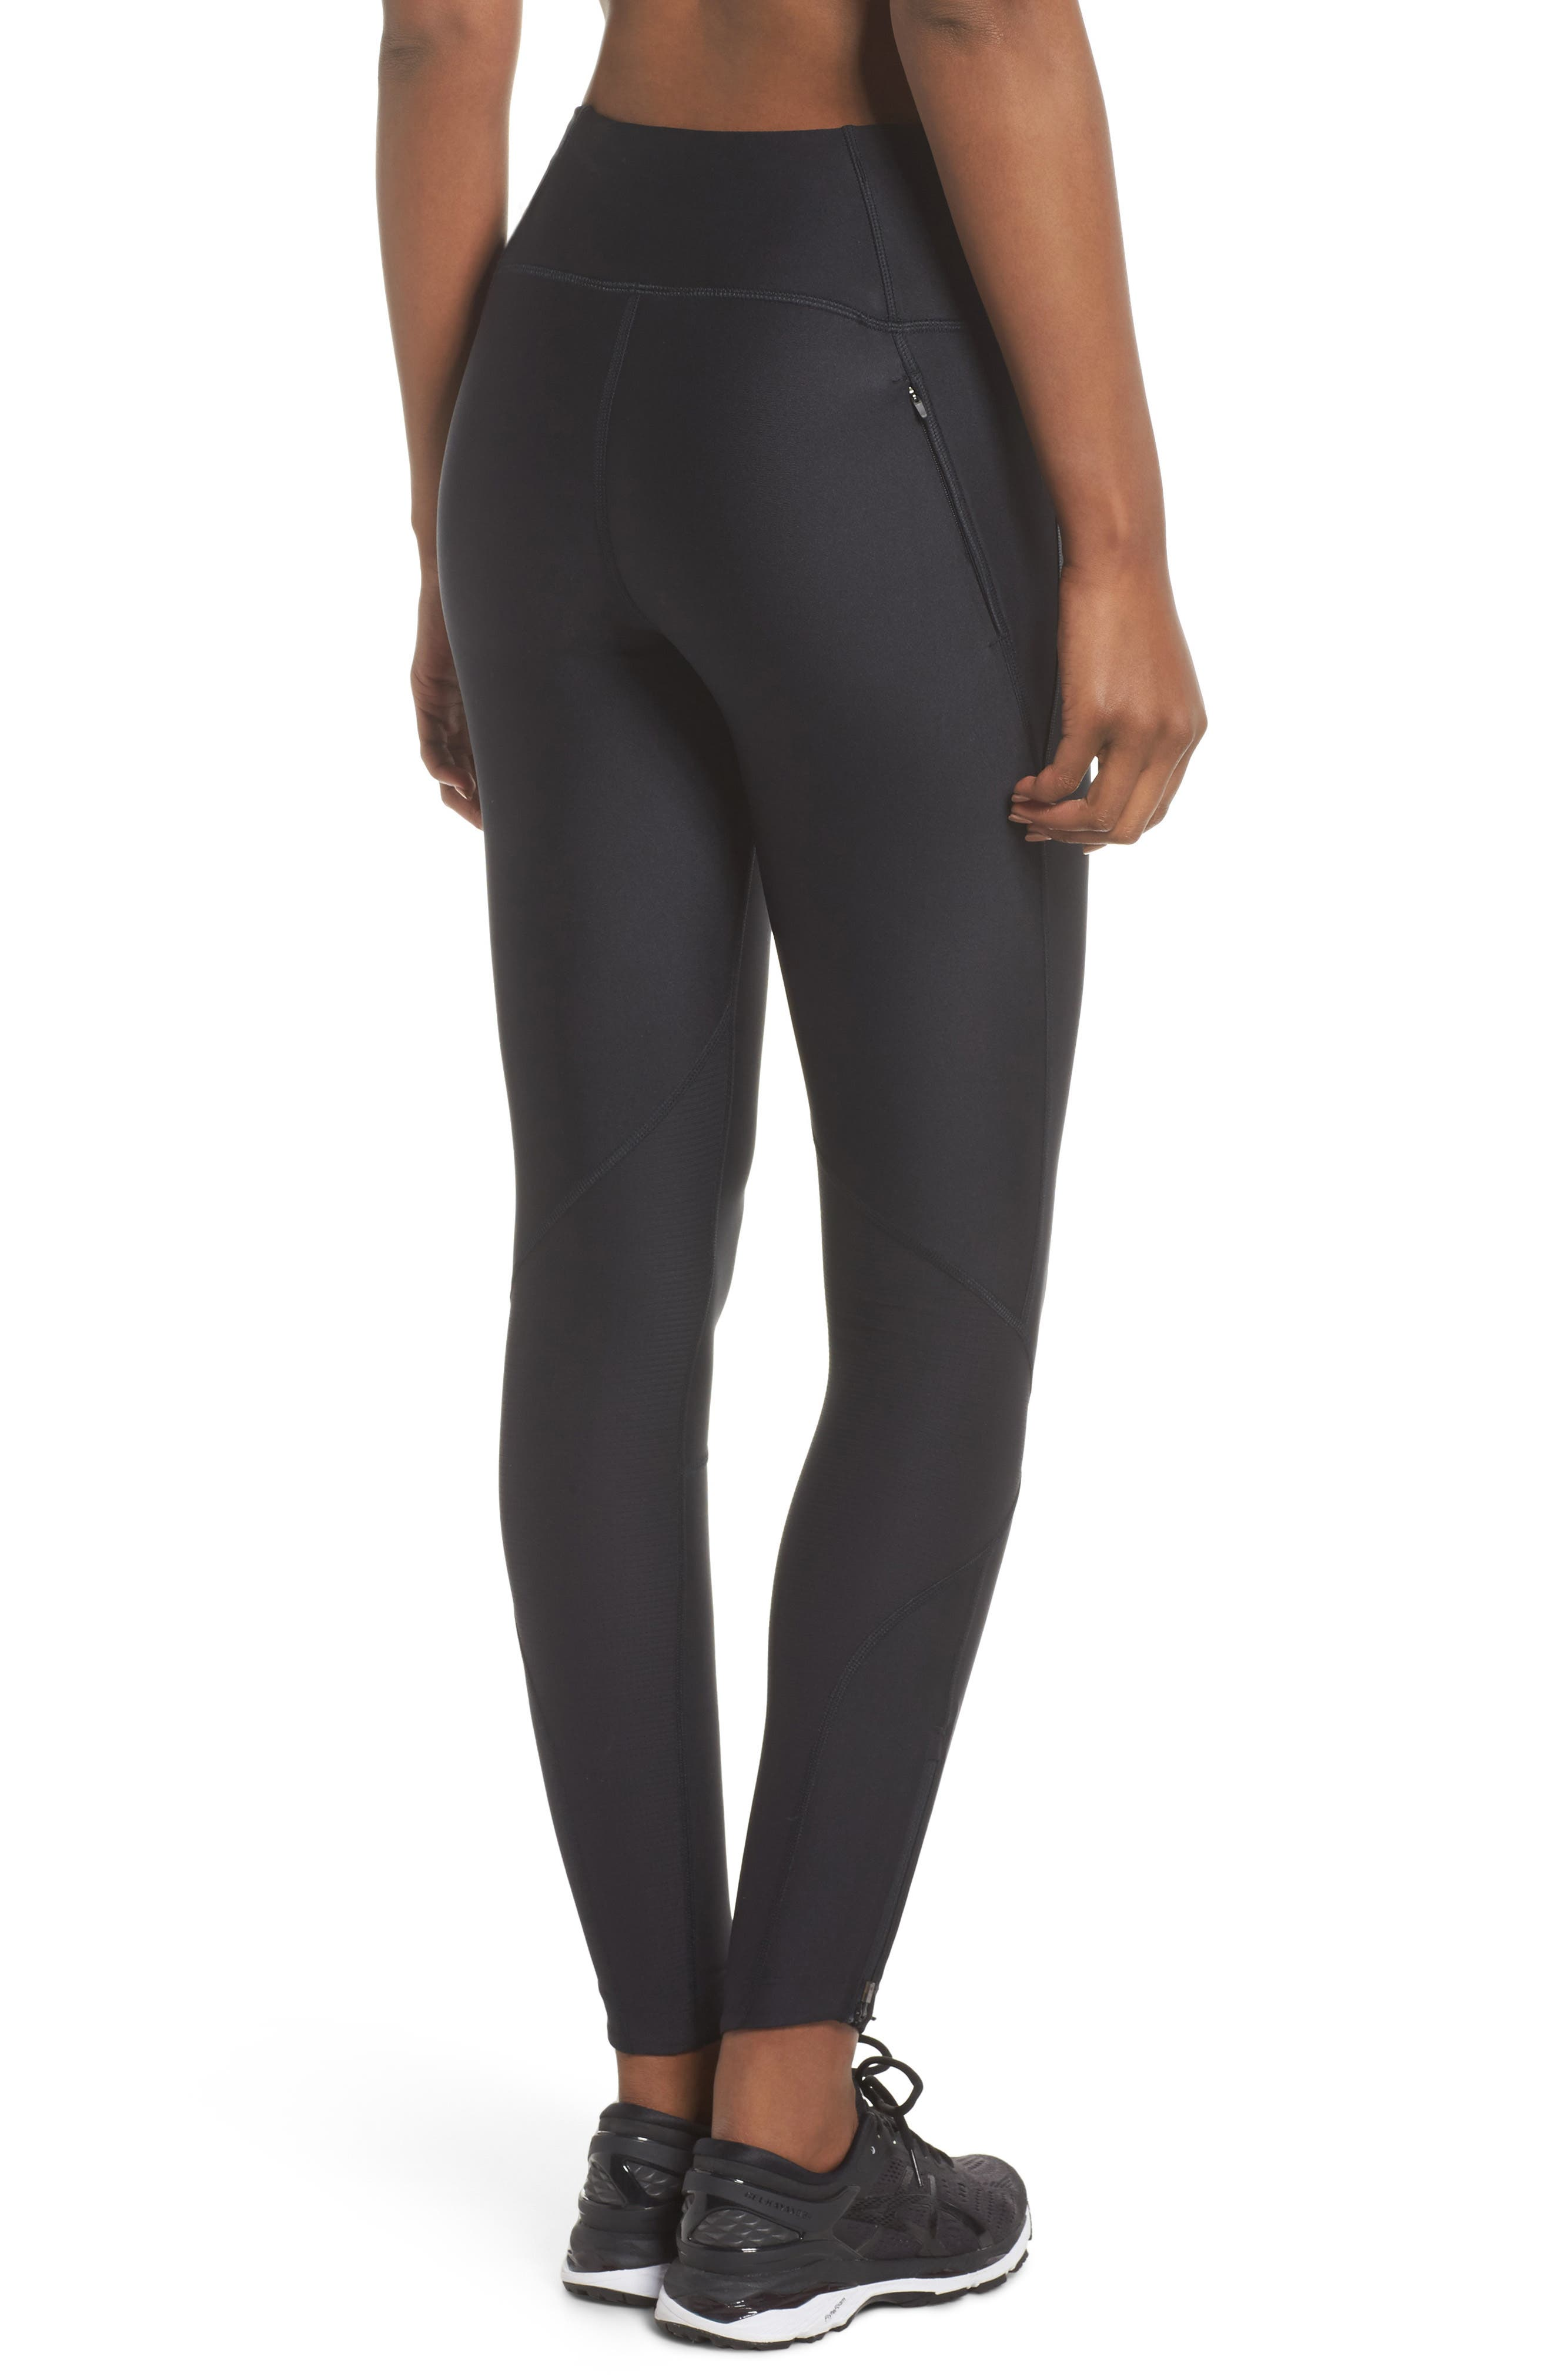 Fly Fast Tights,                             Alternate thumbnail 2, color,                             Black